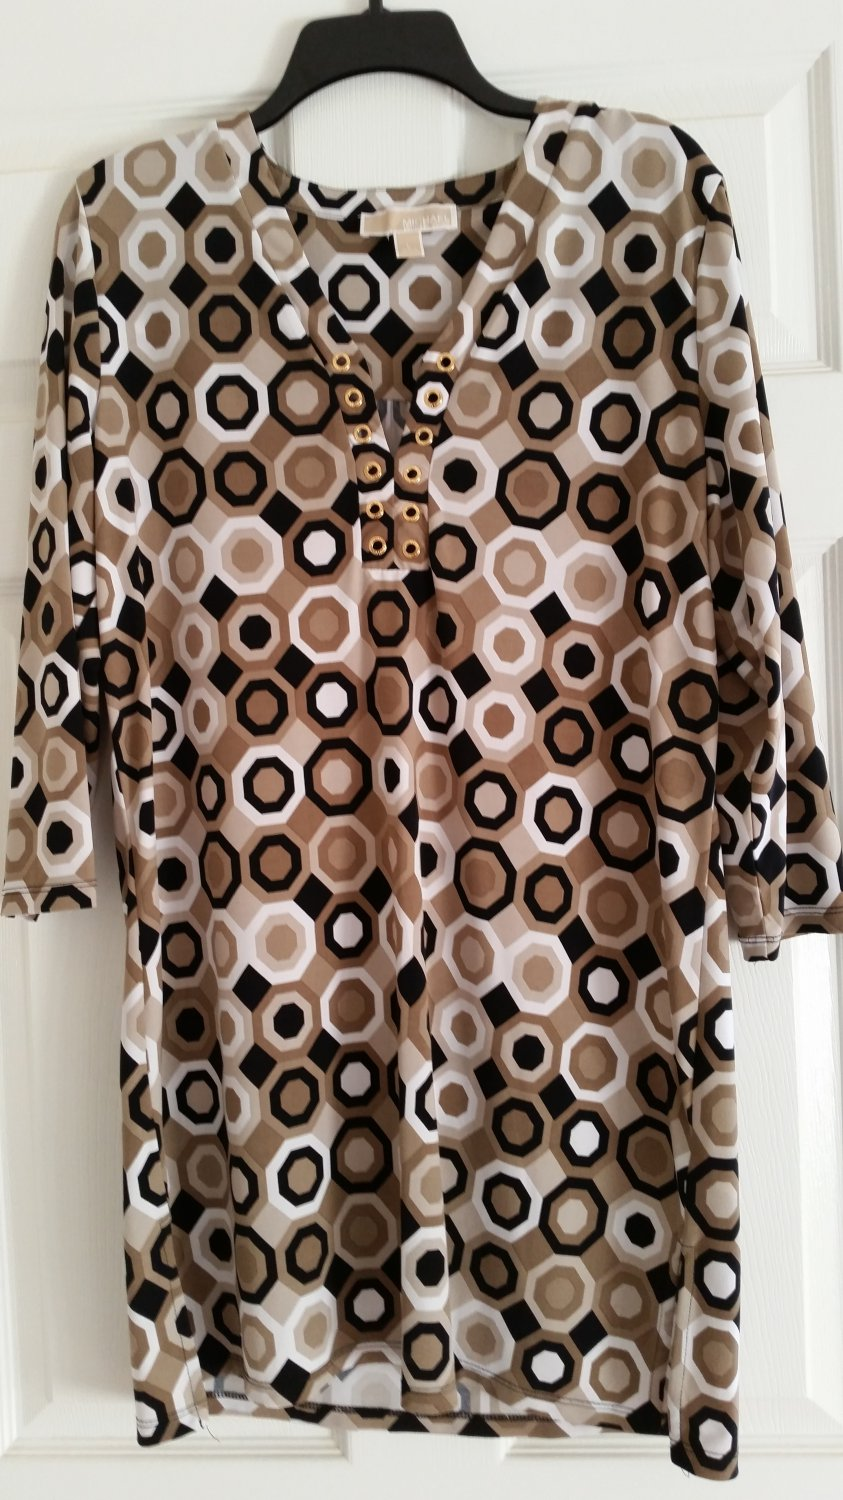 MICHAEL KORS POLYESTER V NECK GROMMET TRIM LOOSE FIT DRESS SIZE LG.